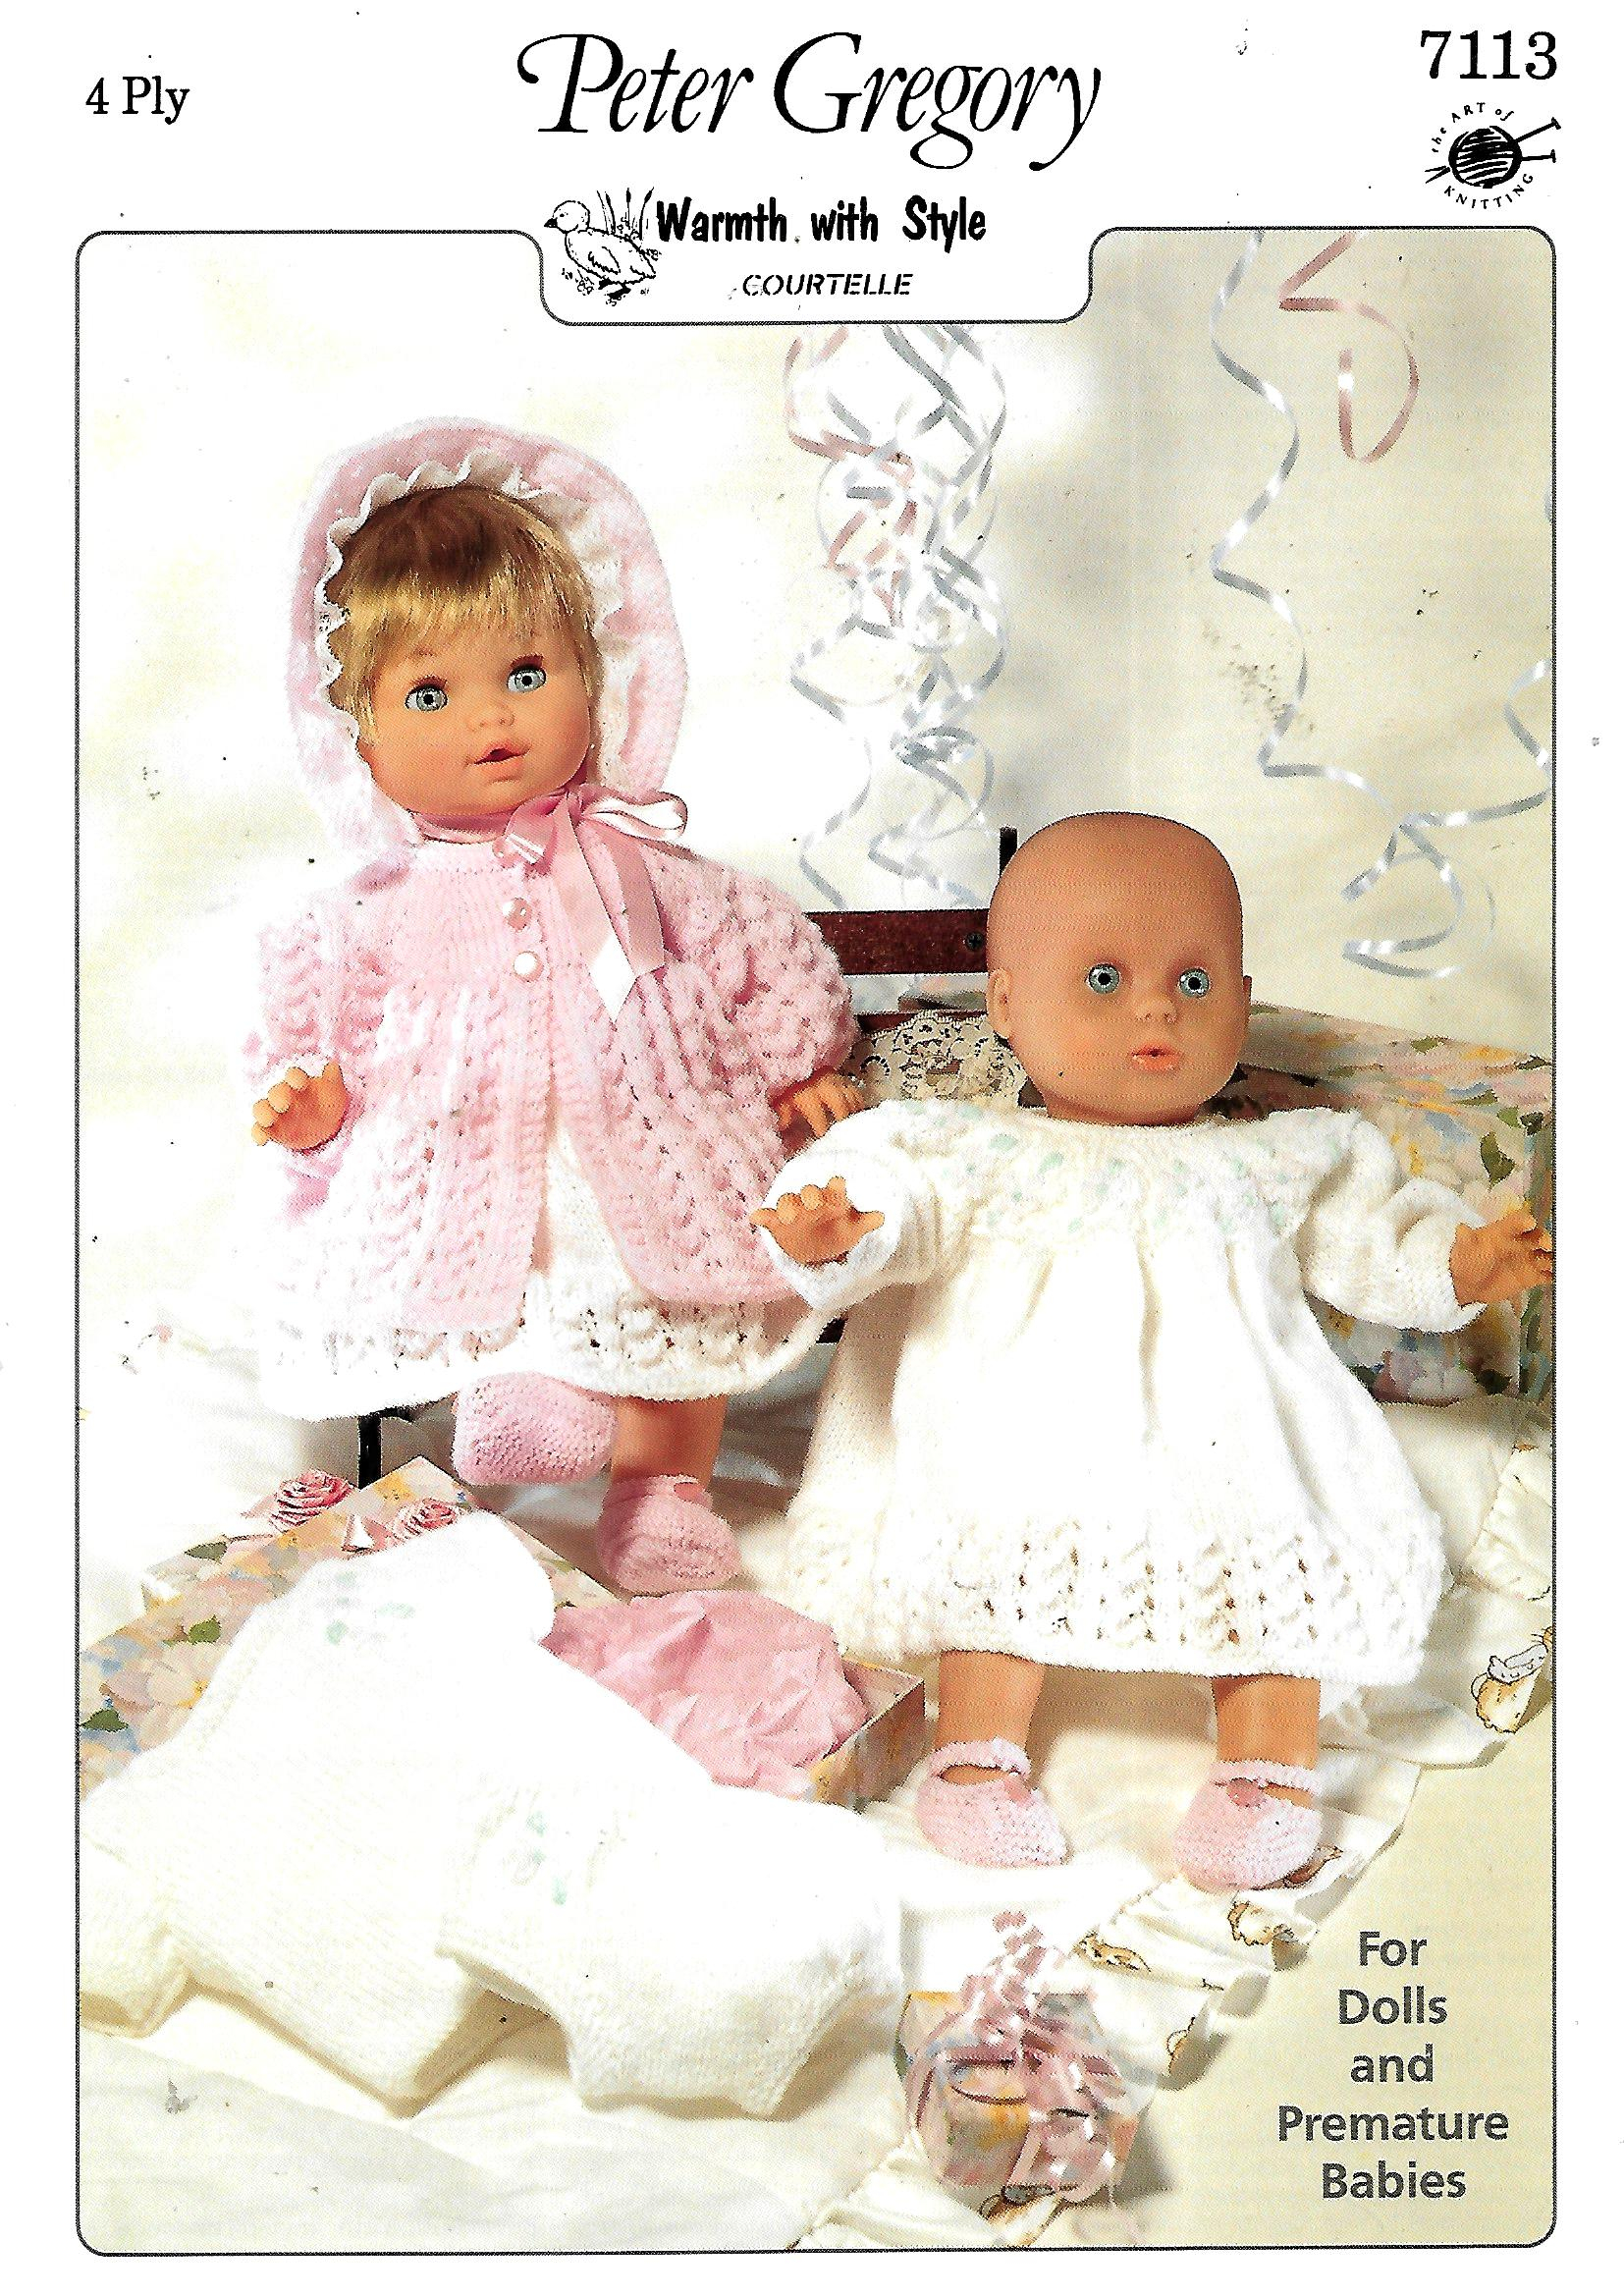 Premature Baby Knitting Patterns Peter Gregory 7113 Dollpremature Ba Knitting Pattern